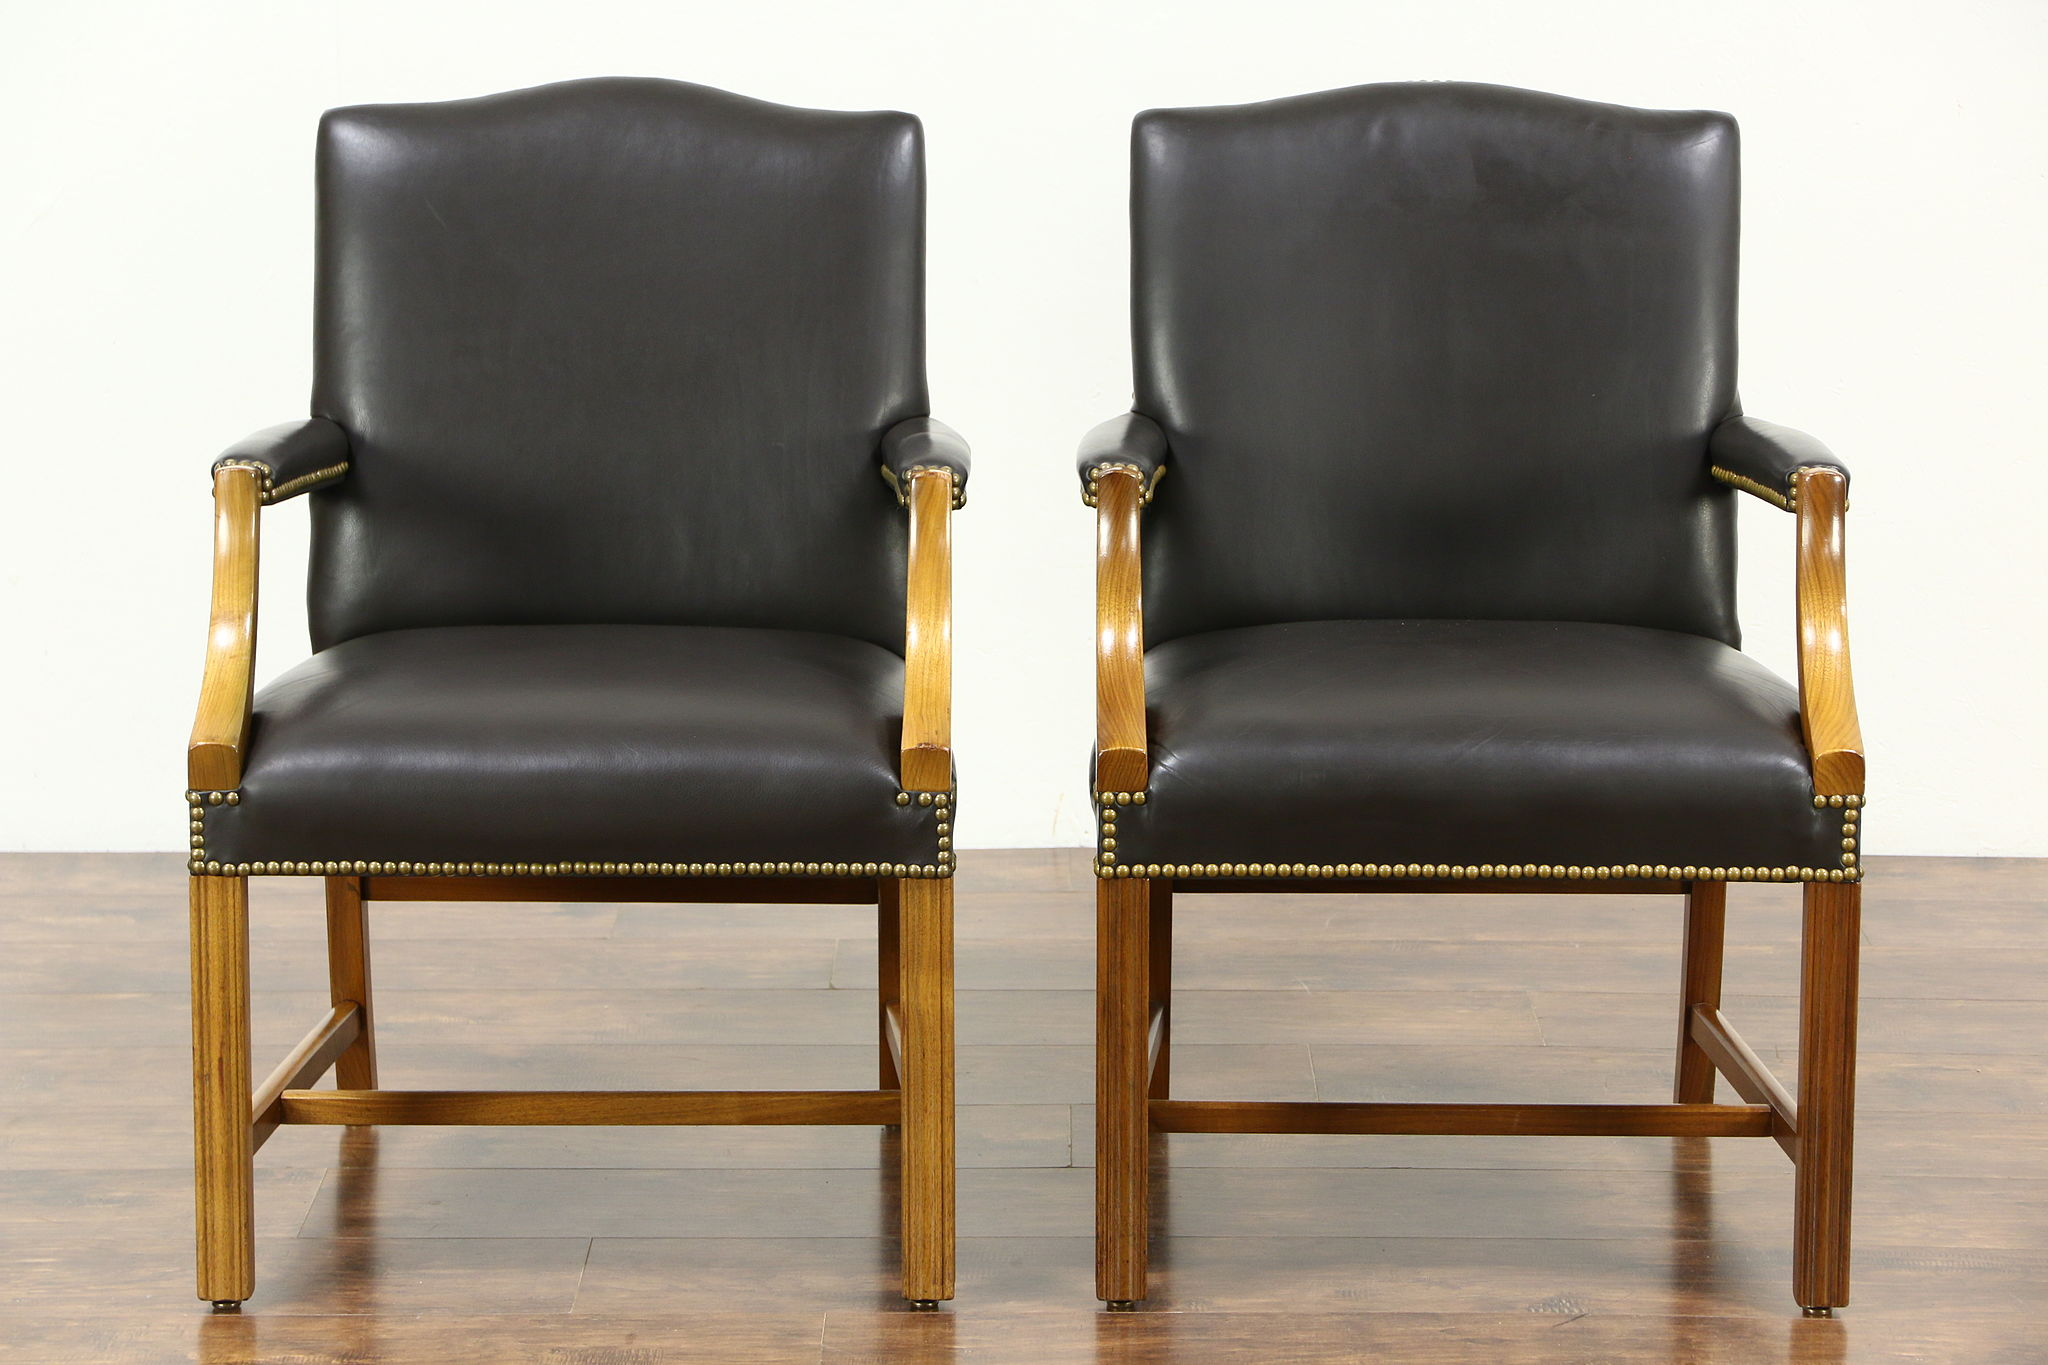 Pair of Leather Vintage fice or Library Chairs with Arms Signed